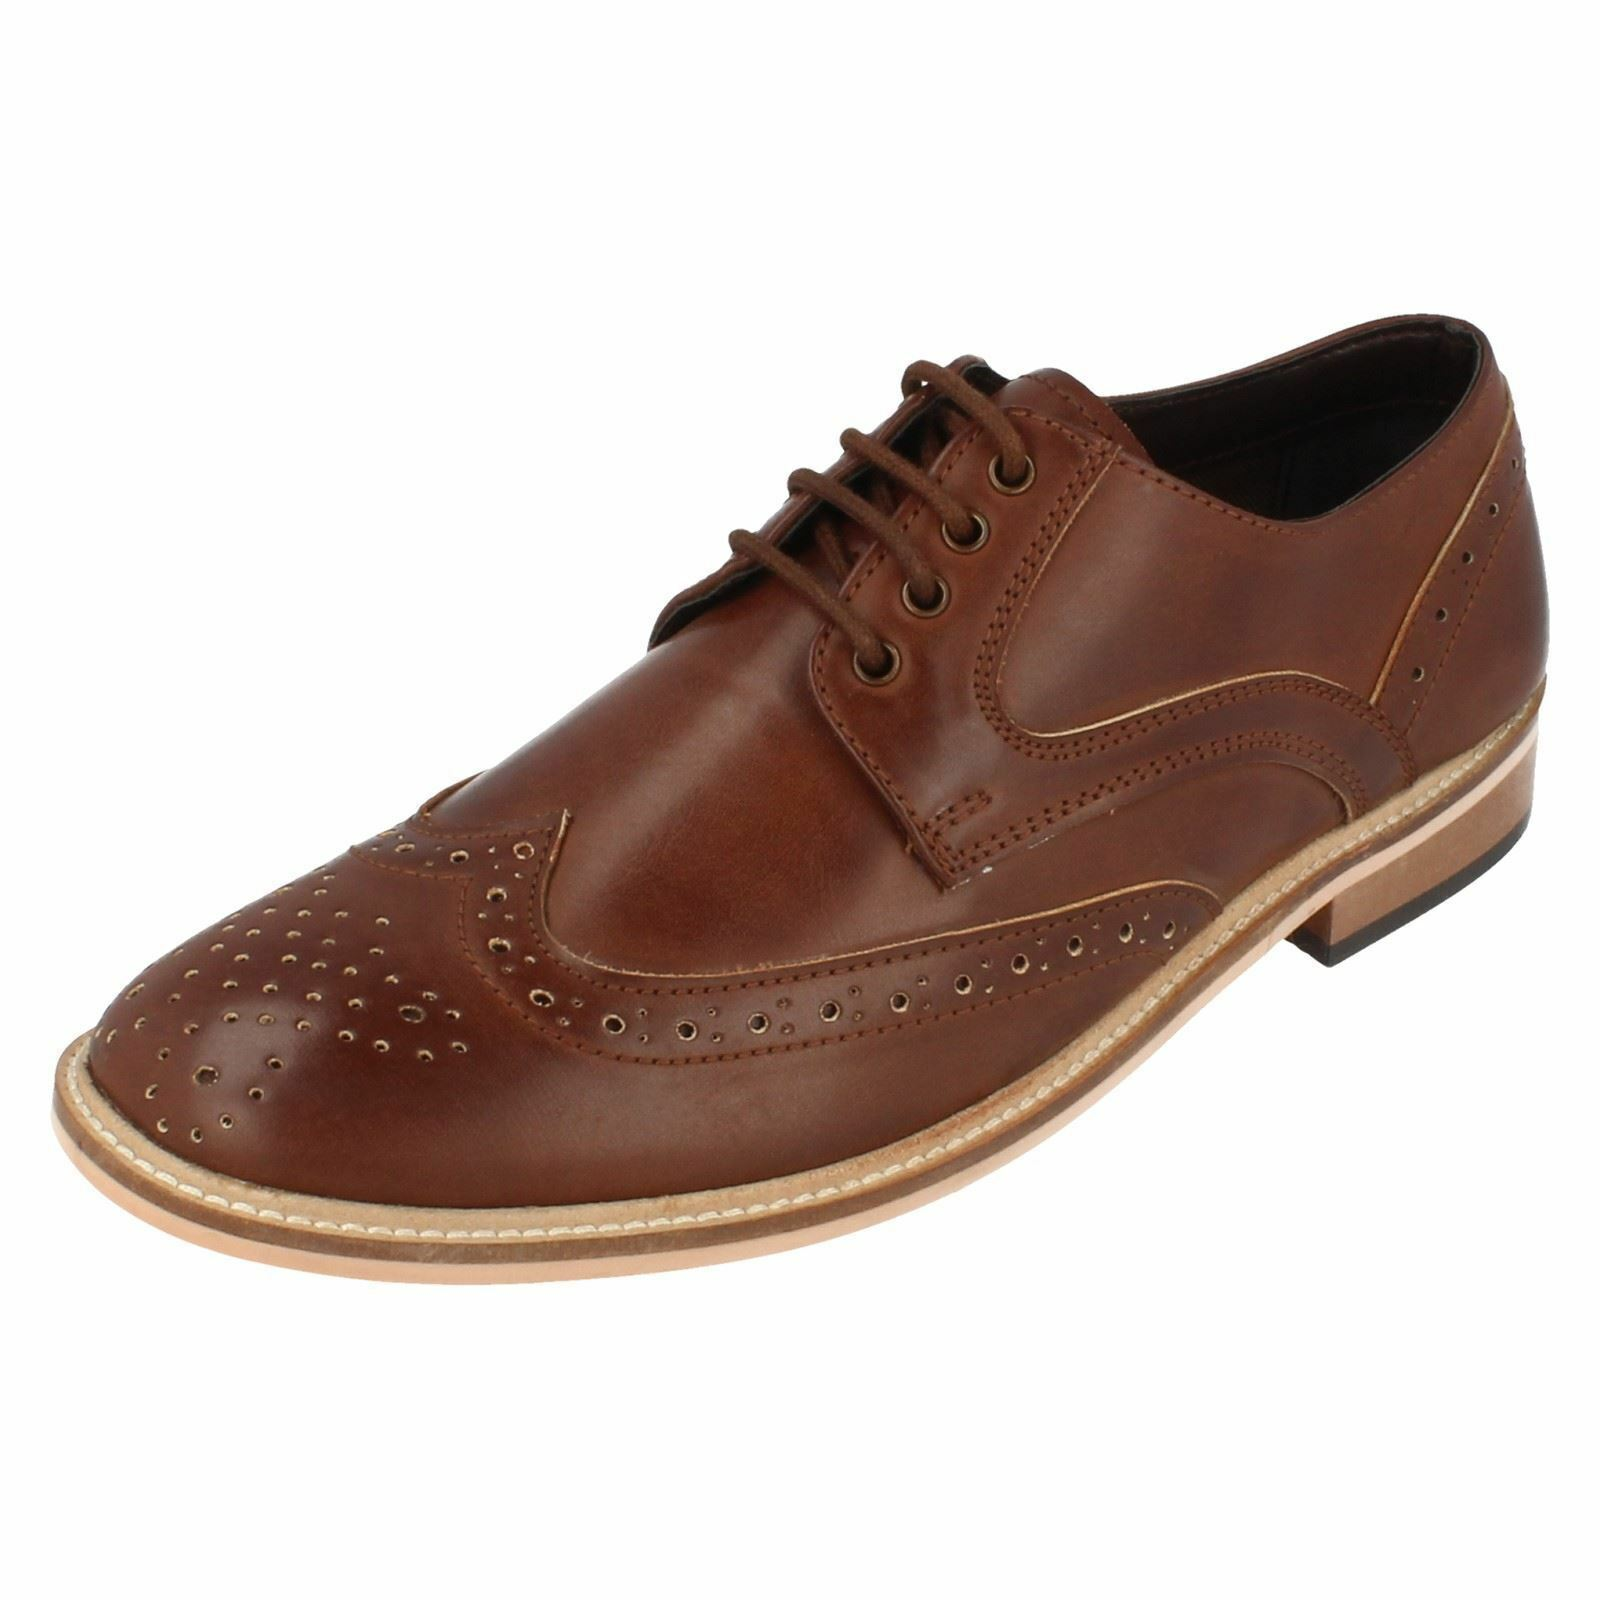 Schuhes Uomo 21004 Brogue Lace Up Schuhes  By Lambretta Retail Price eb31d9